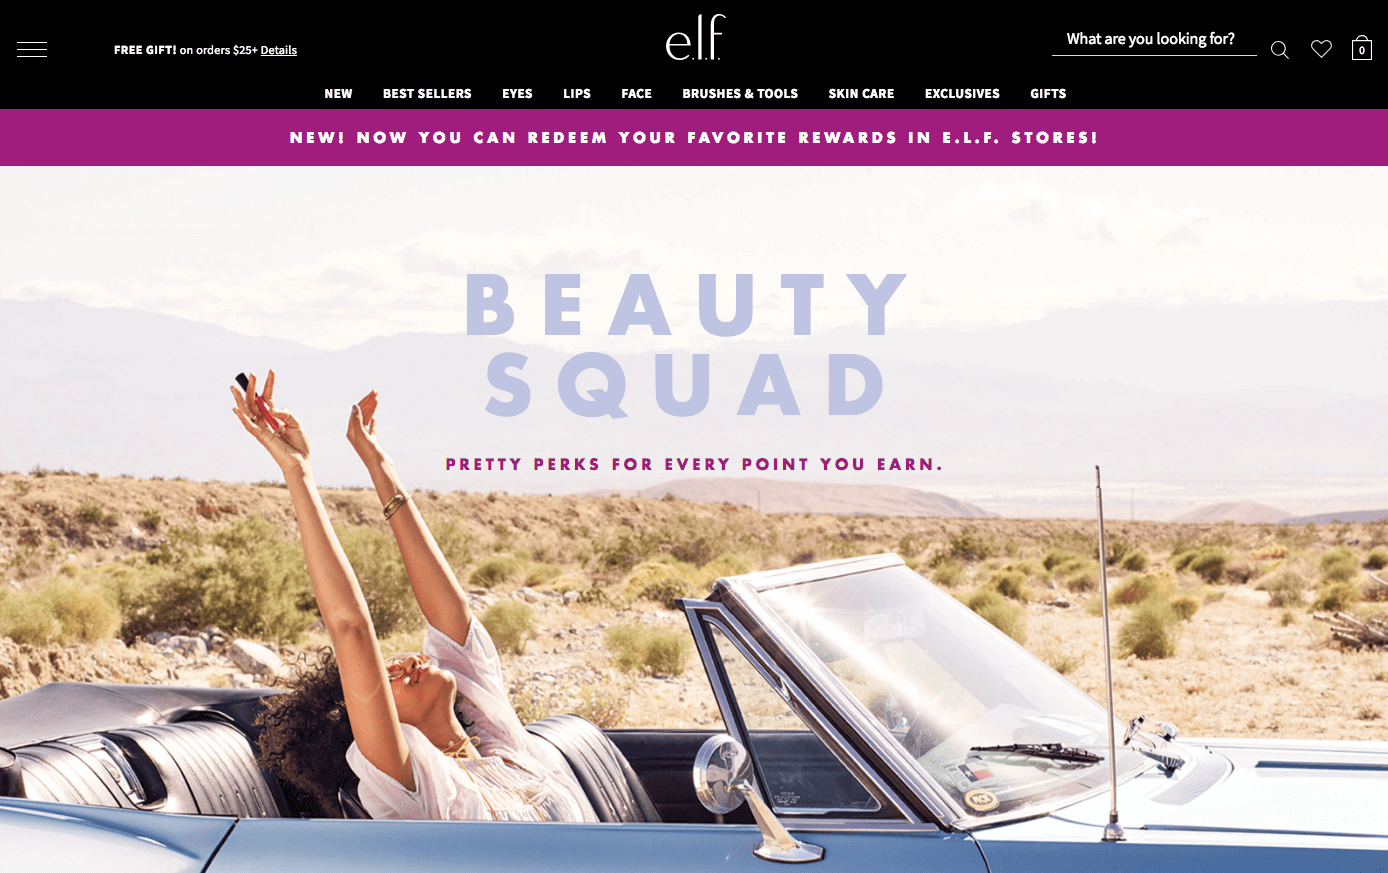 The Best eCommerce Loyalty Programs - elf beauty squad